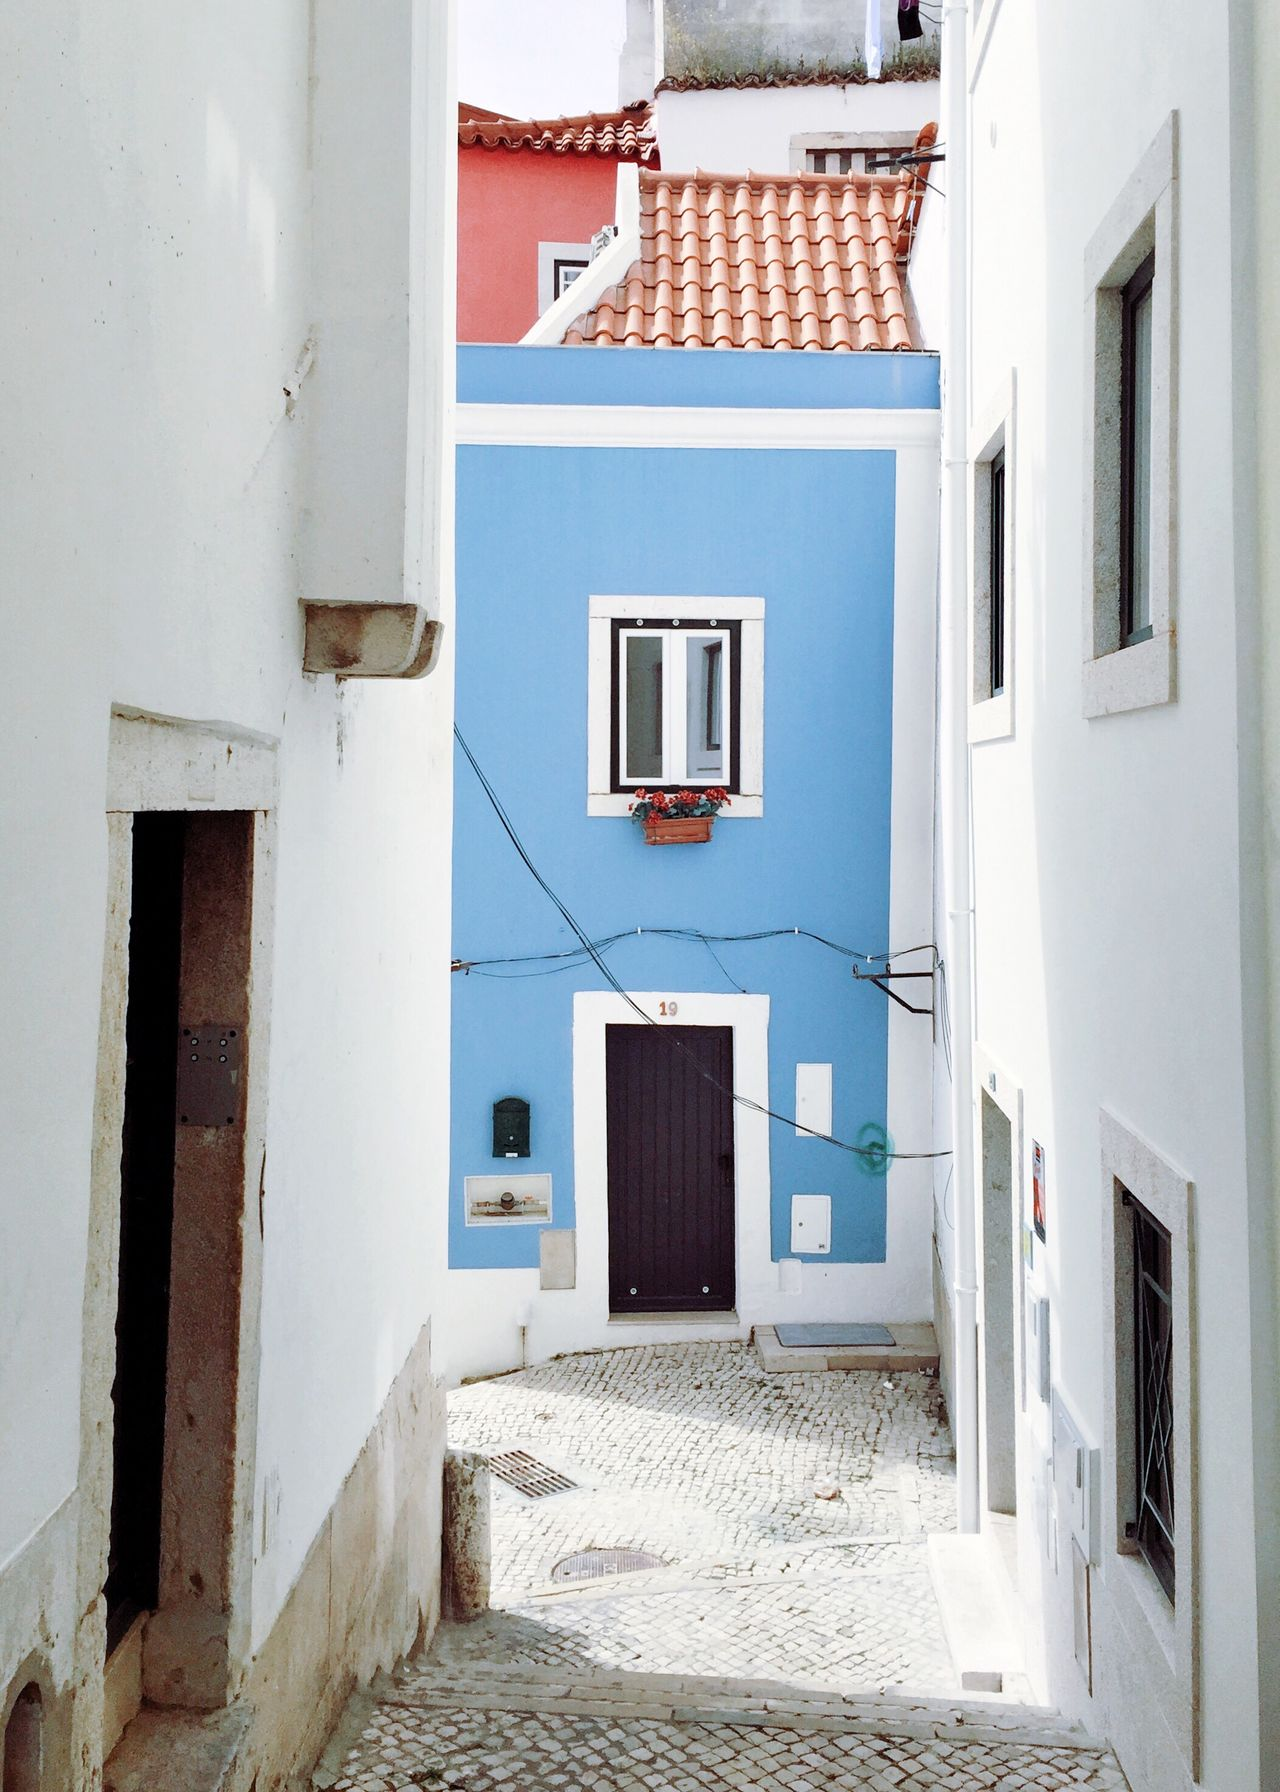 Lisbon april 2017 Architecture Building Exterior House Whitewashed Streetphotography Travel Destinations Lisbon Streetphoto_color Enjoying Life Lifestyles